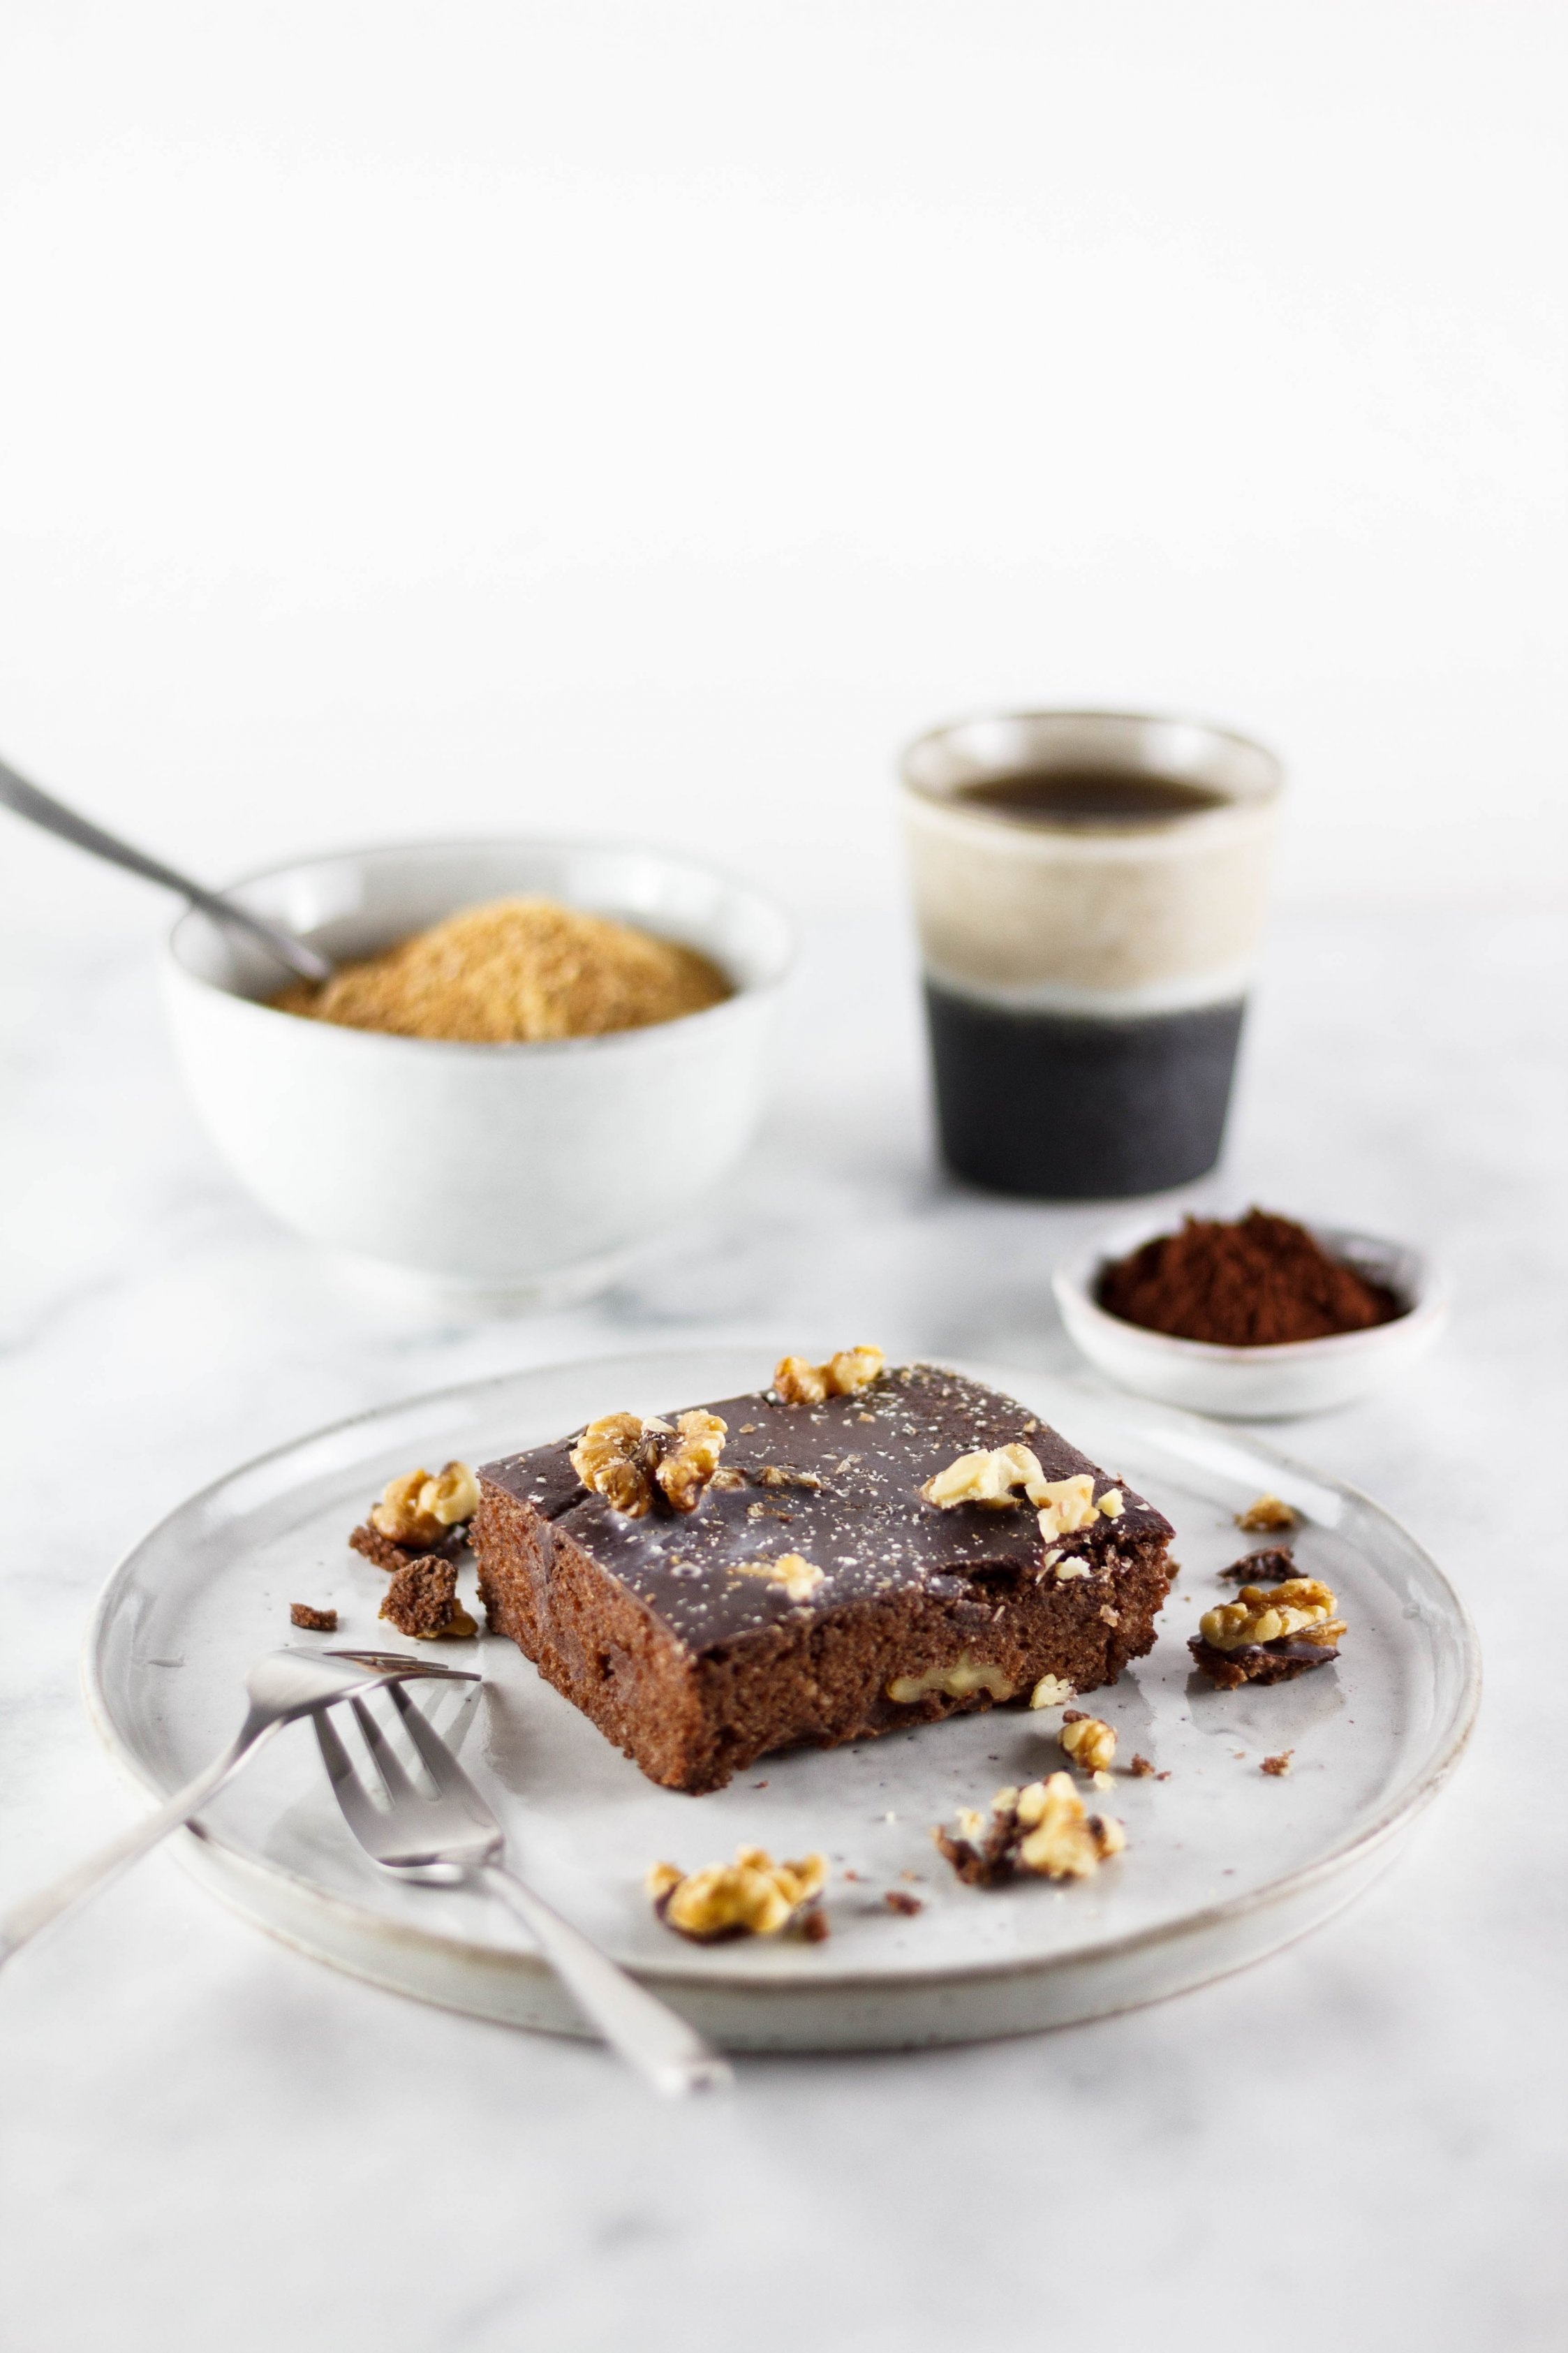 zuckerfrei vegane Brownies